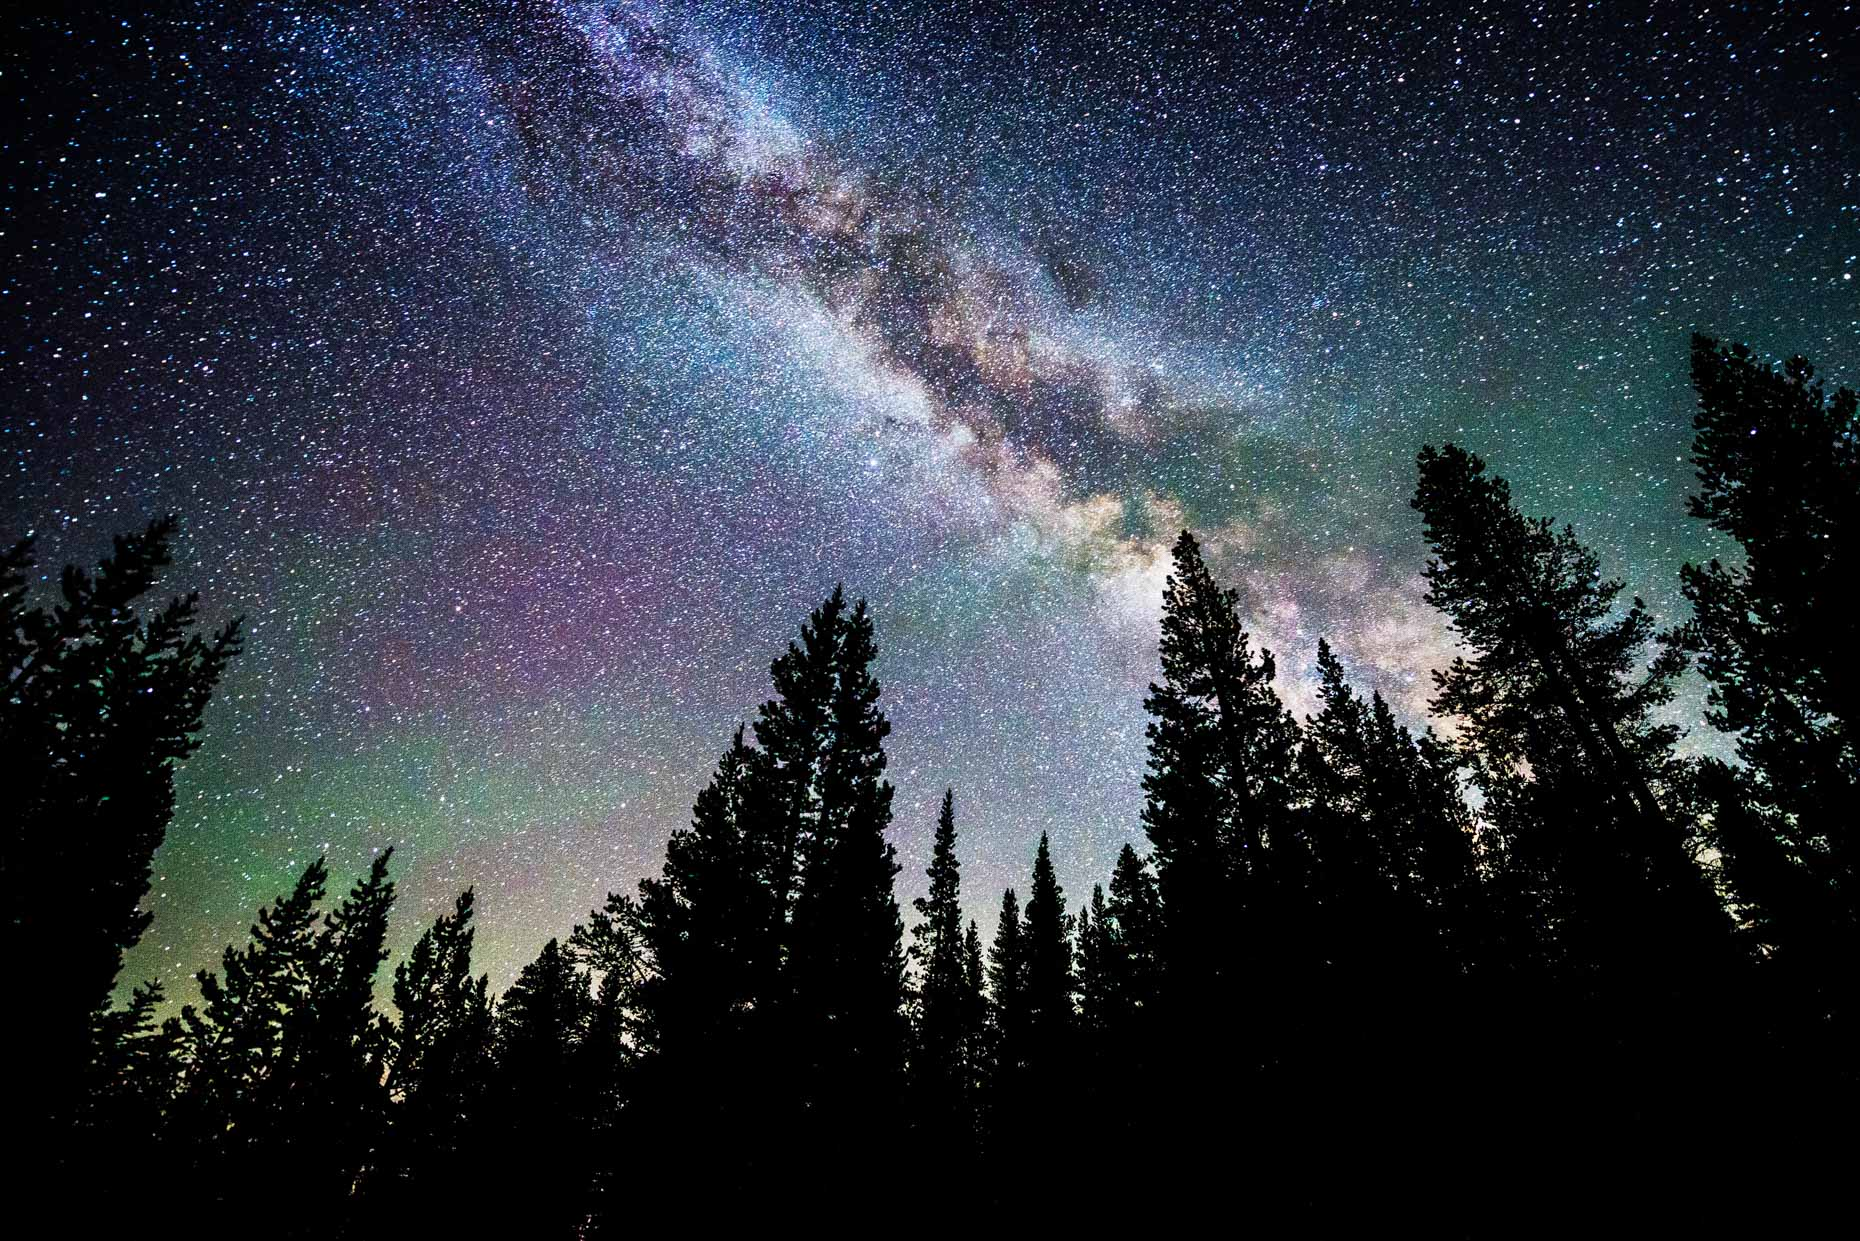 Milky Way And Stars Over Trees - Lake Tahoe, Nevada